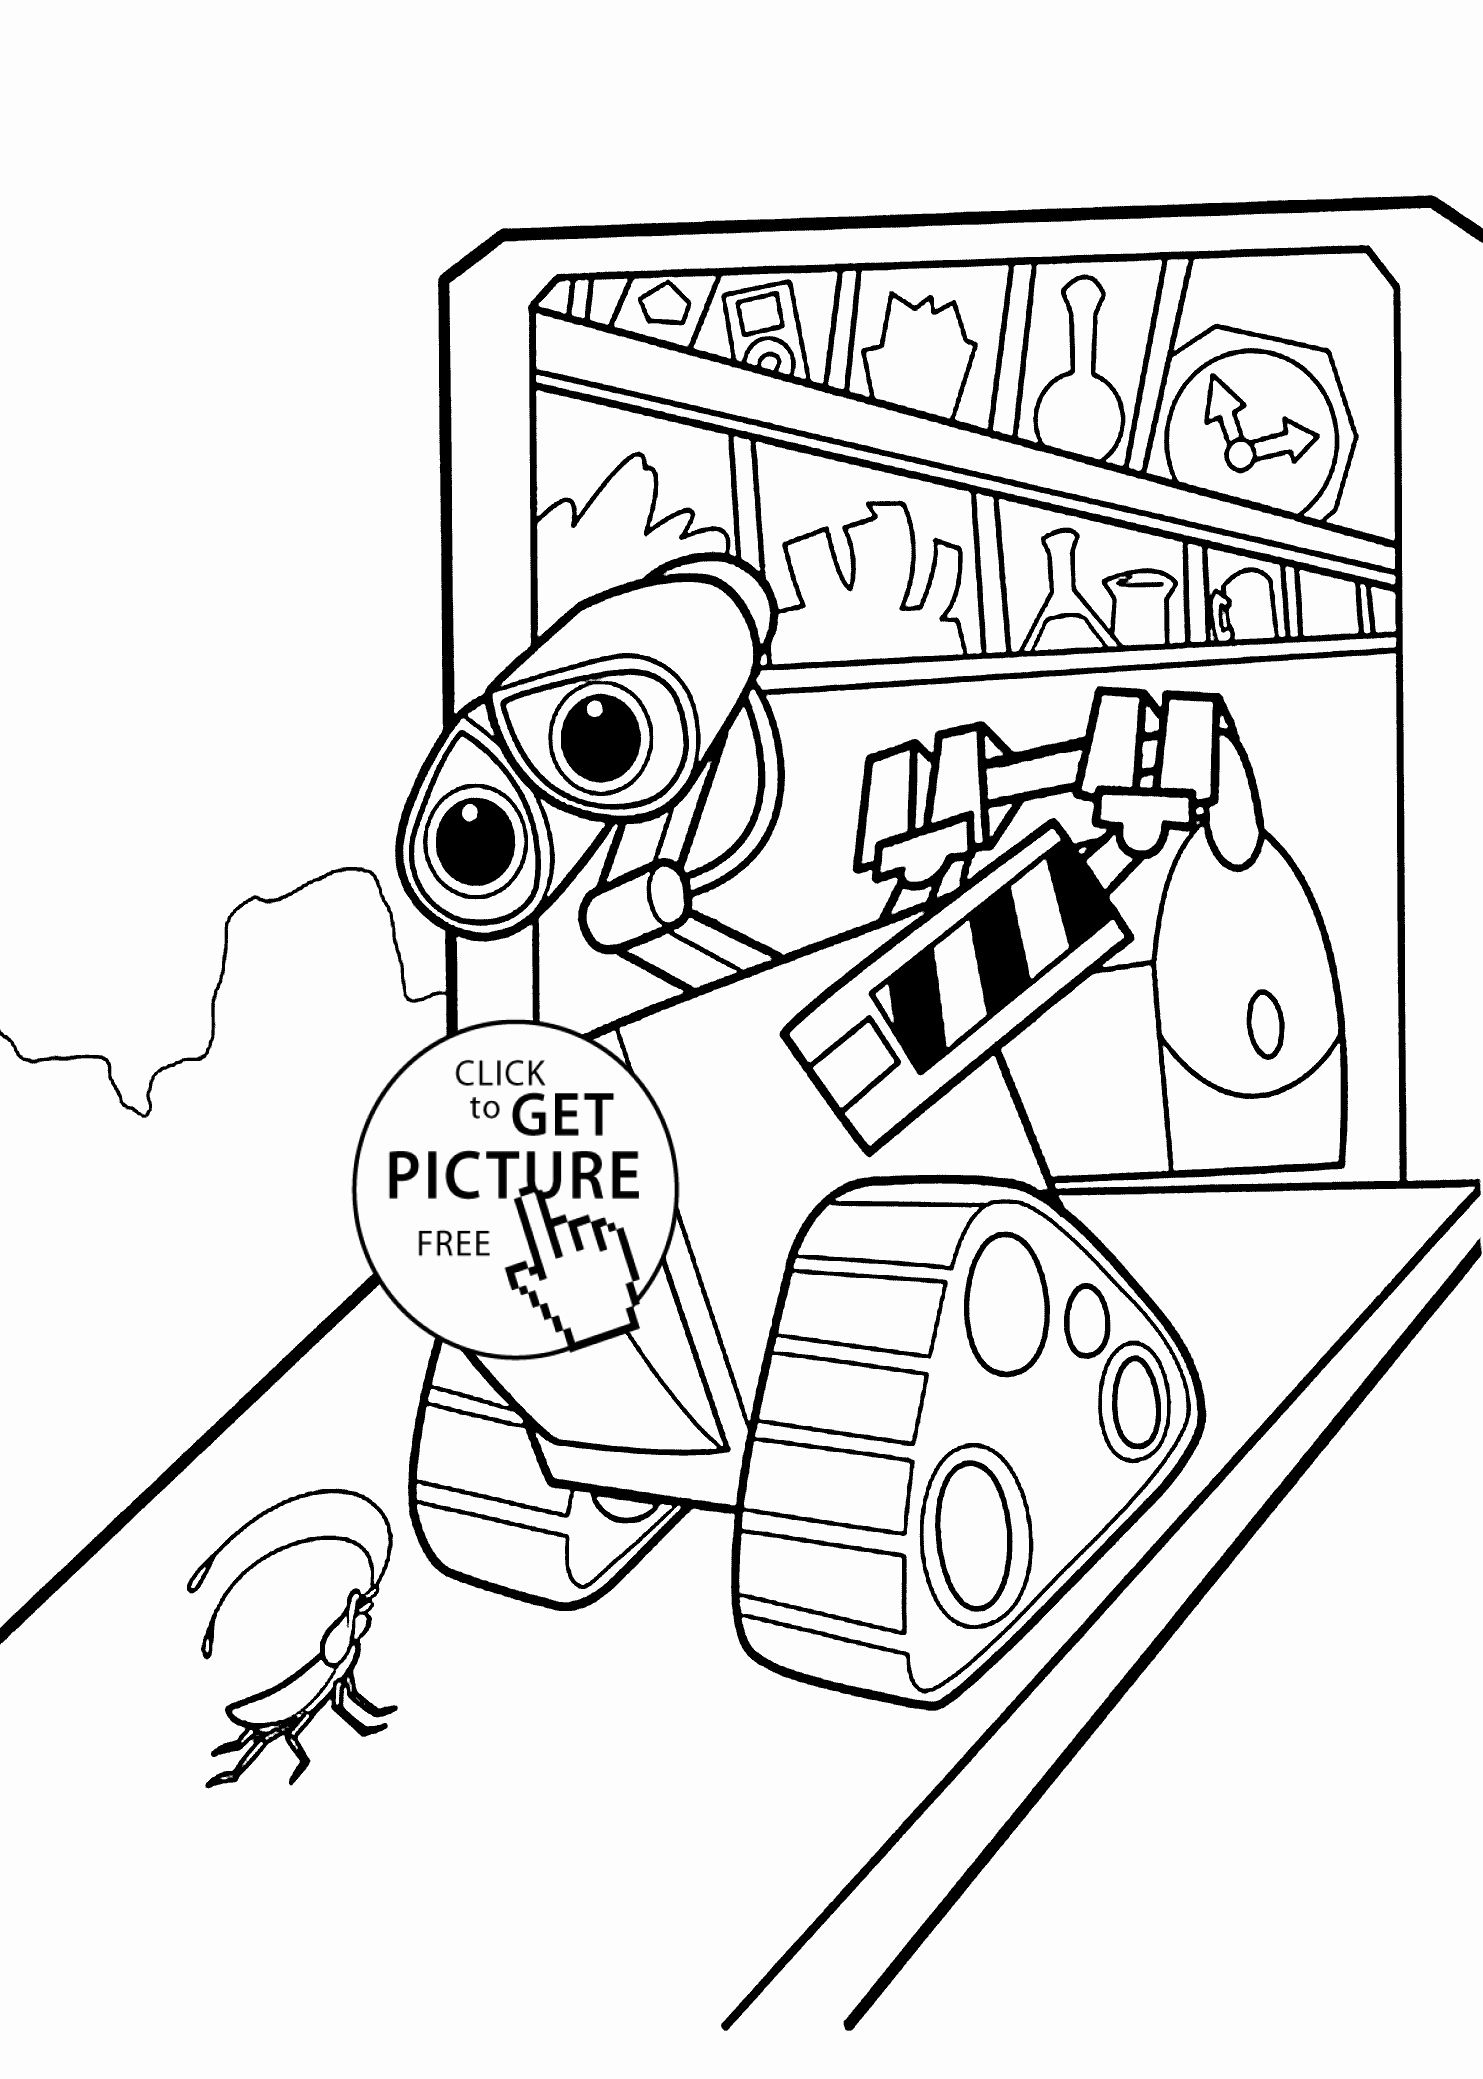 Rainbow Coloring Page Preschool Lovely Wall E Home